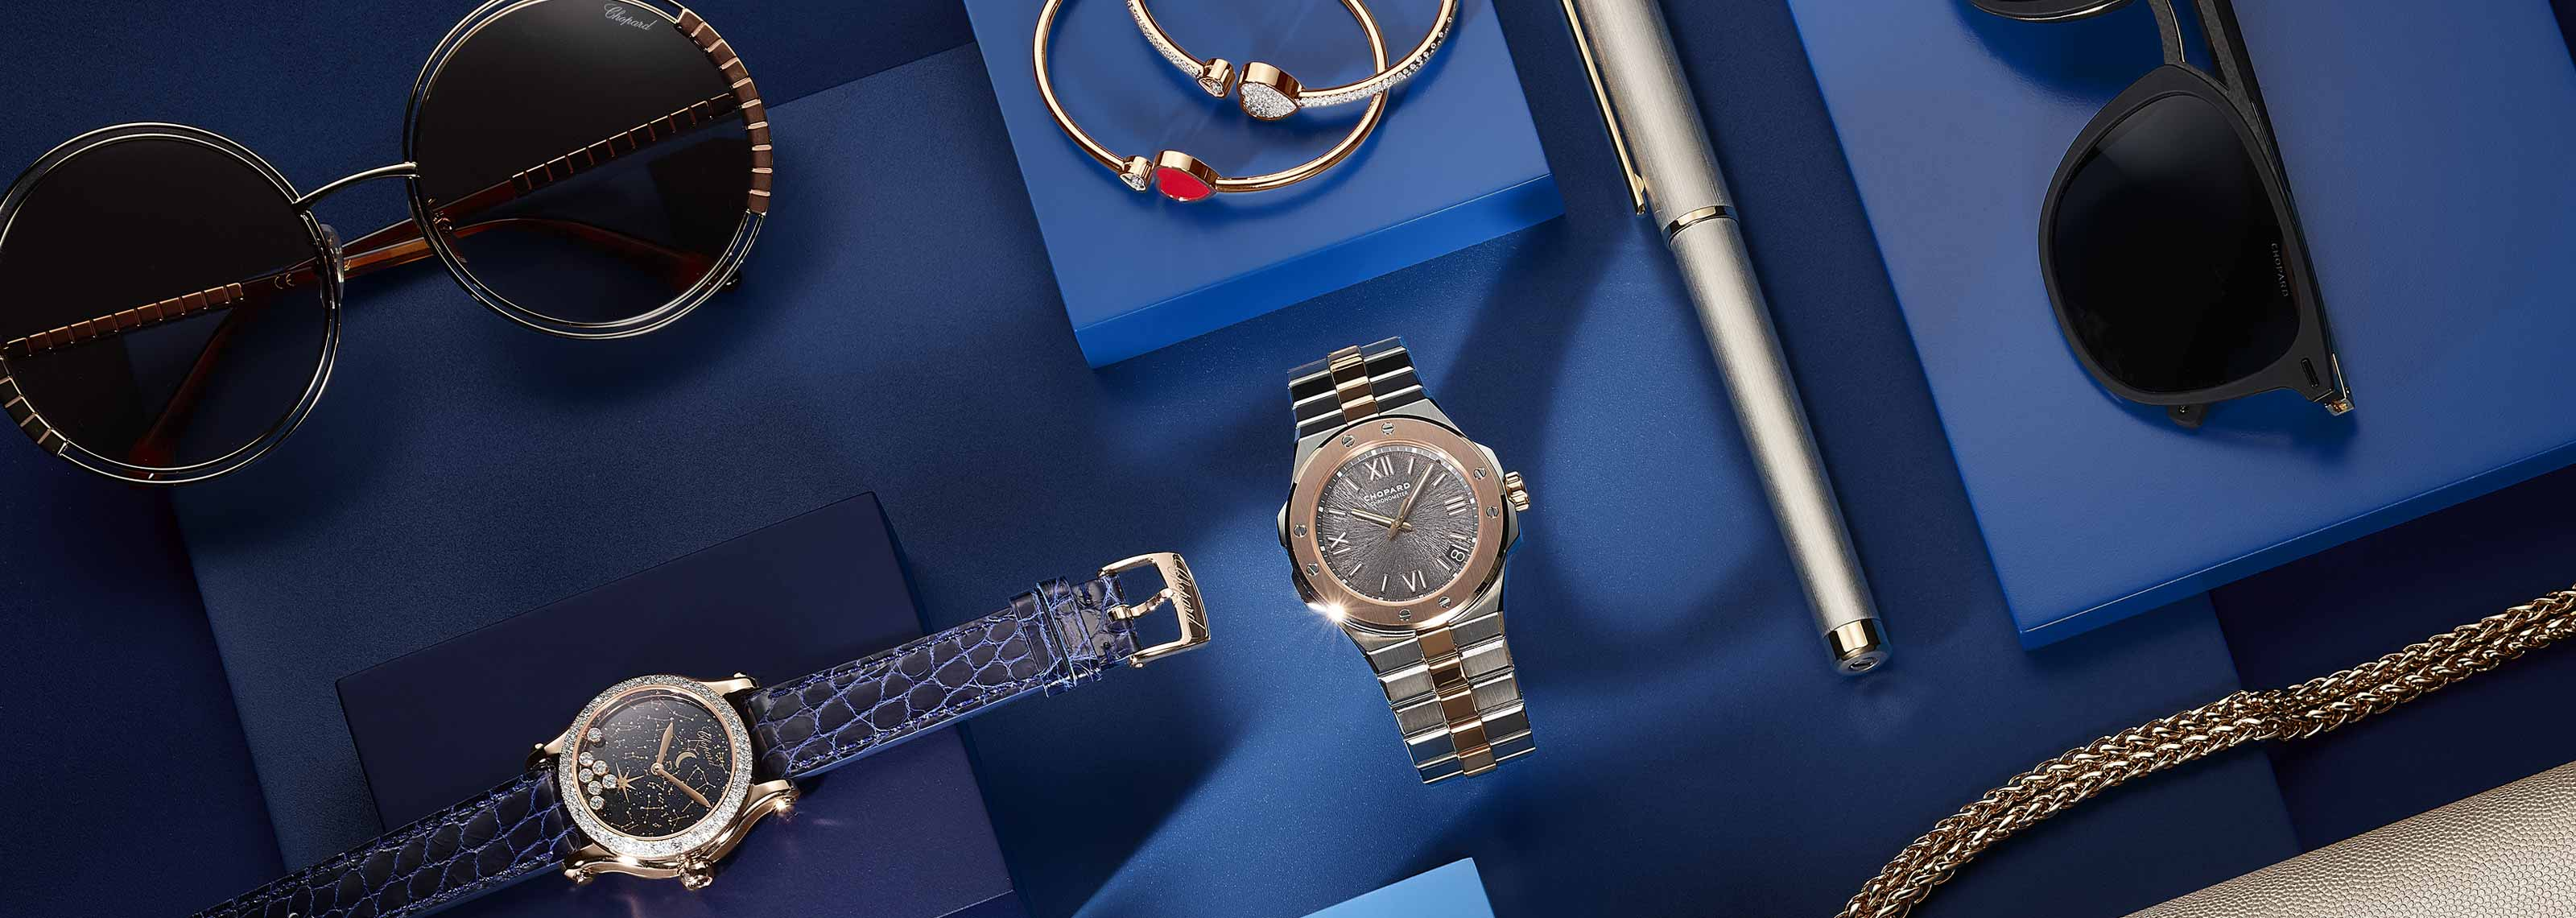 https://www.manfredijewels.com/collections/chopard-watches